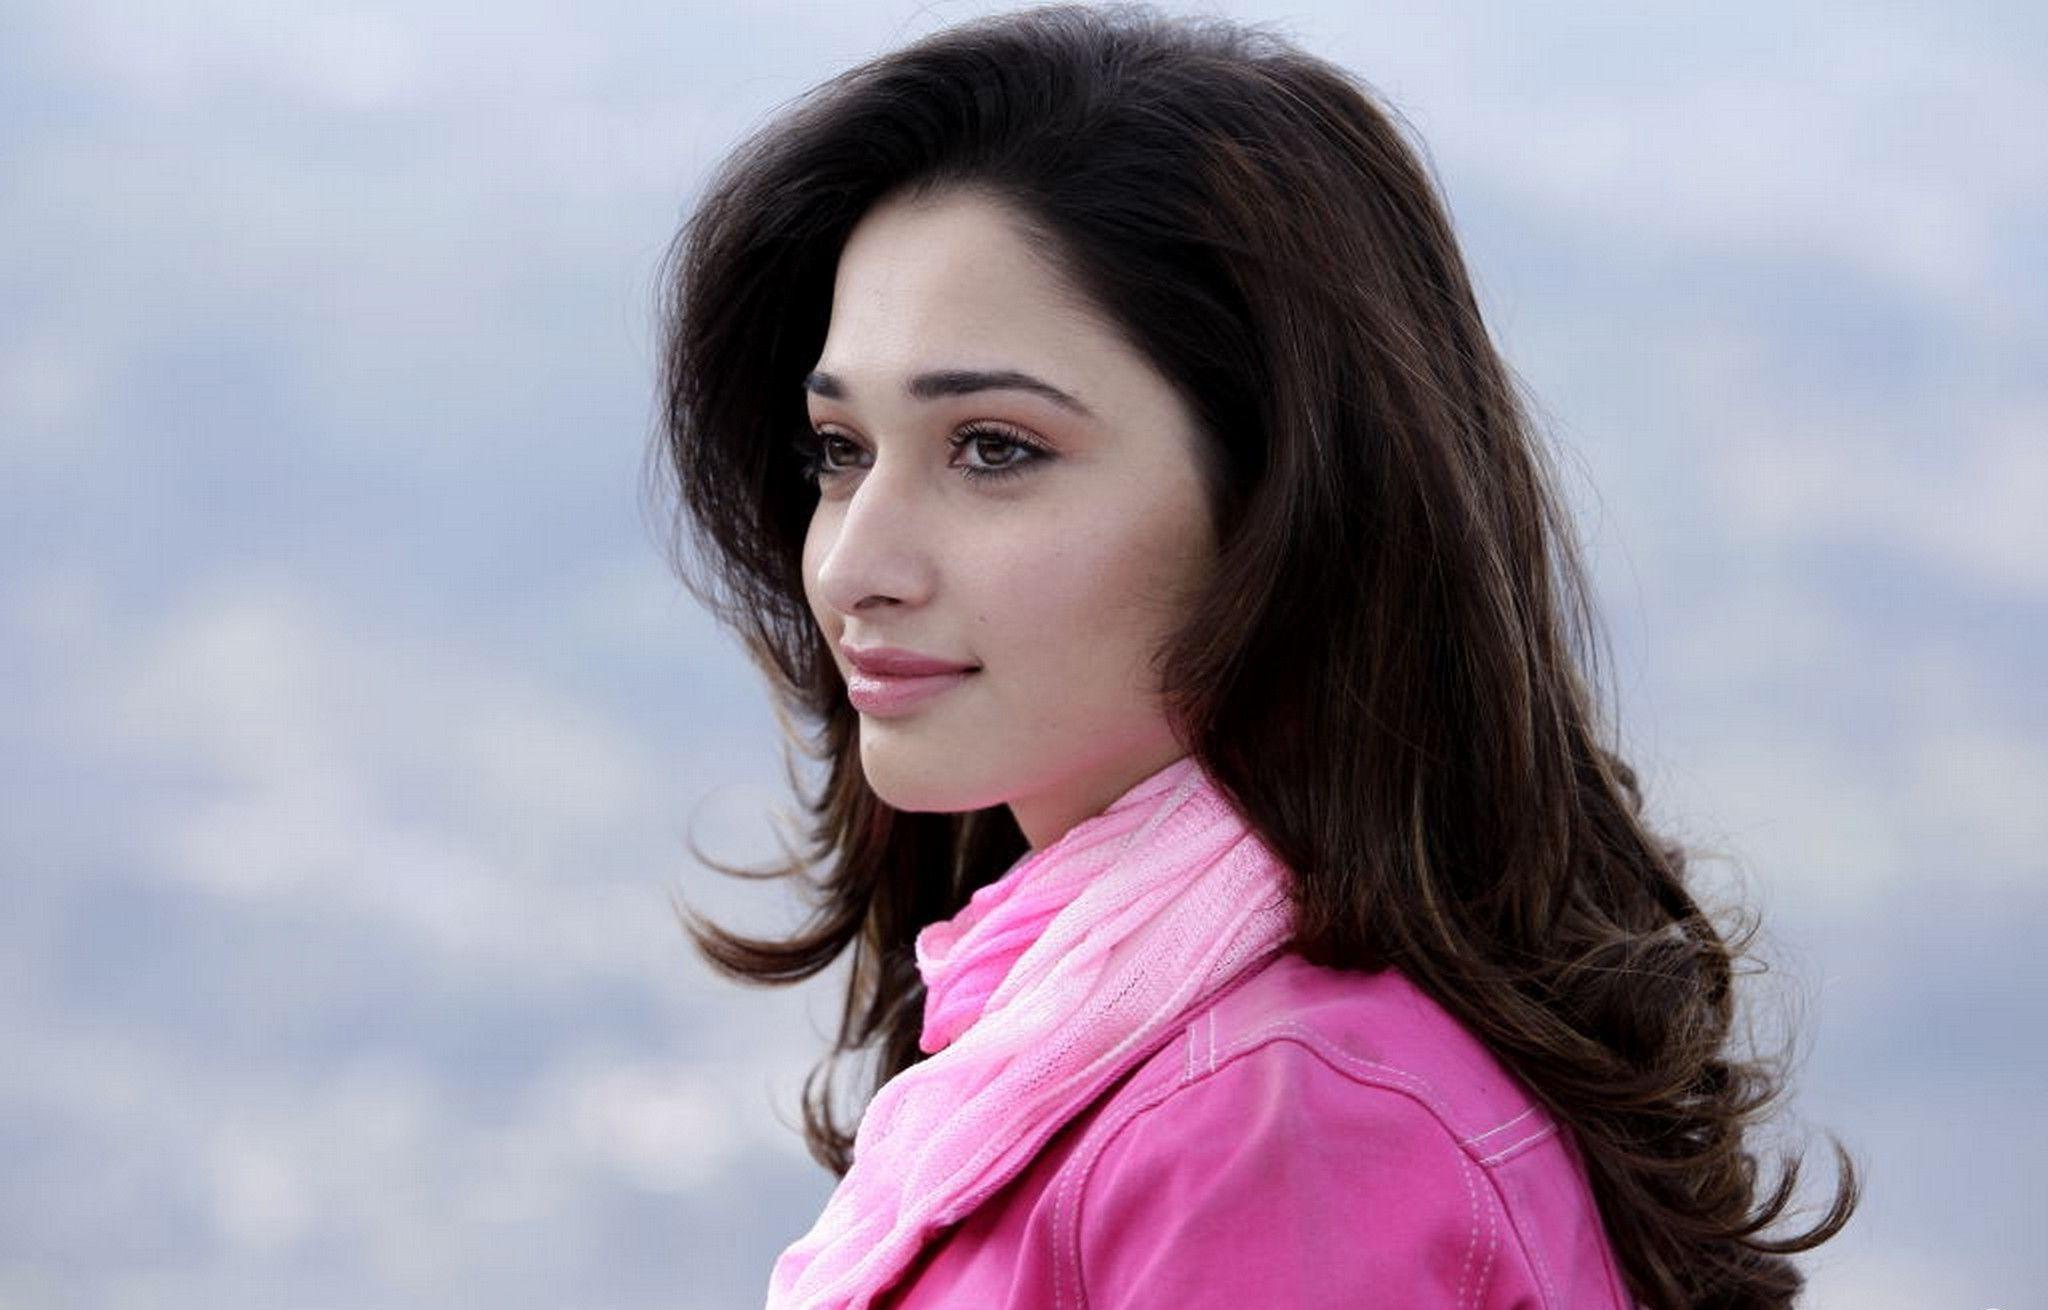 Tamanna Hd Saree Wallpaper: Tamanna Bhatia Wallpapers HD 2015